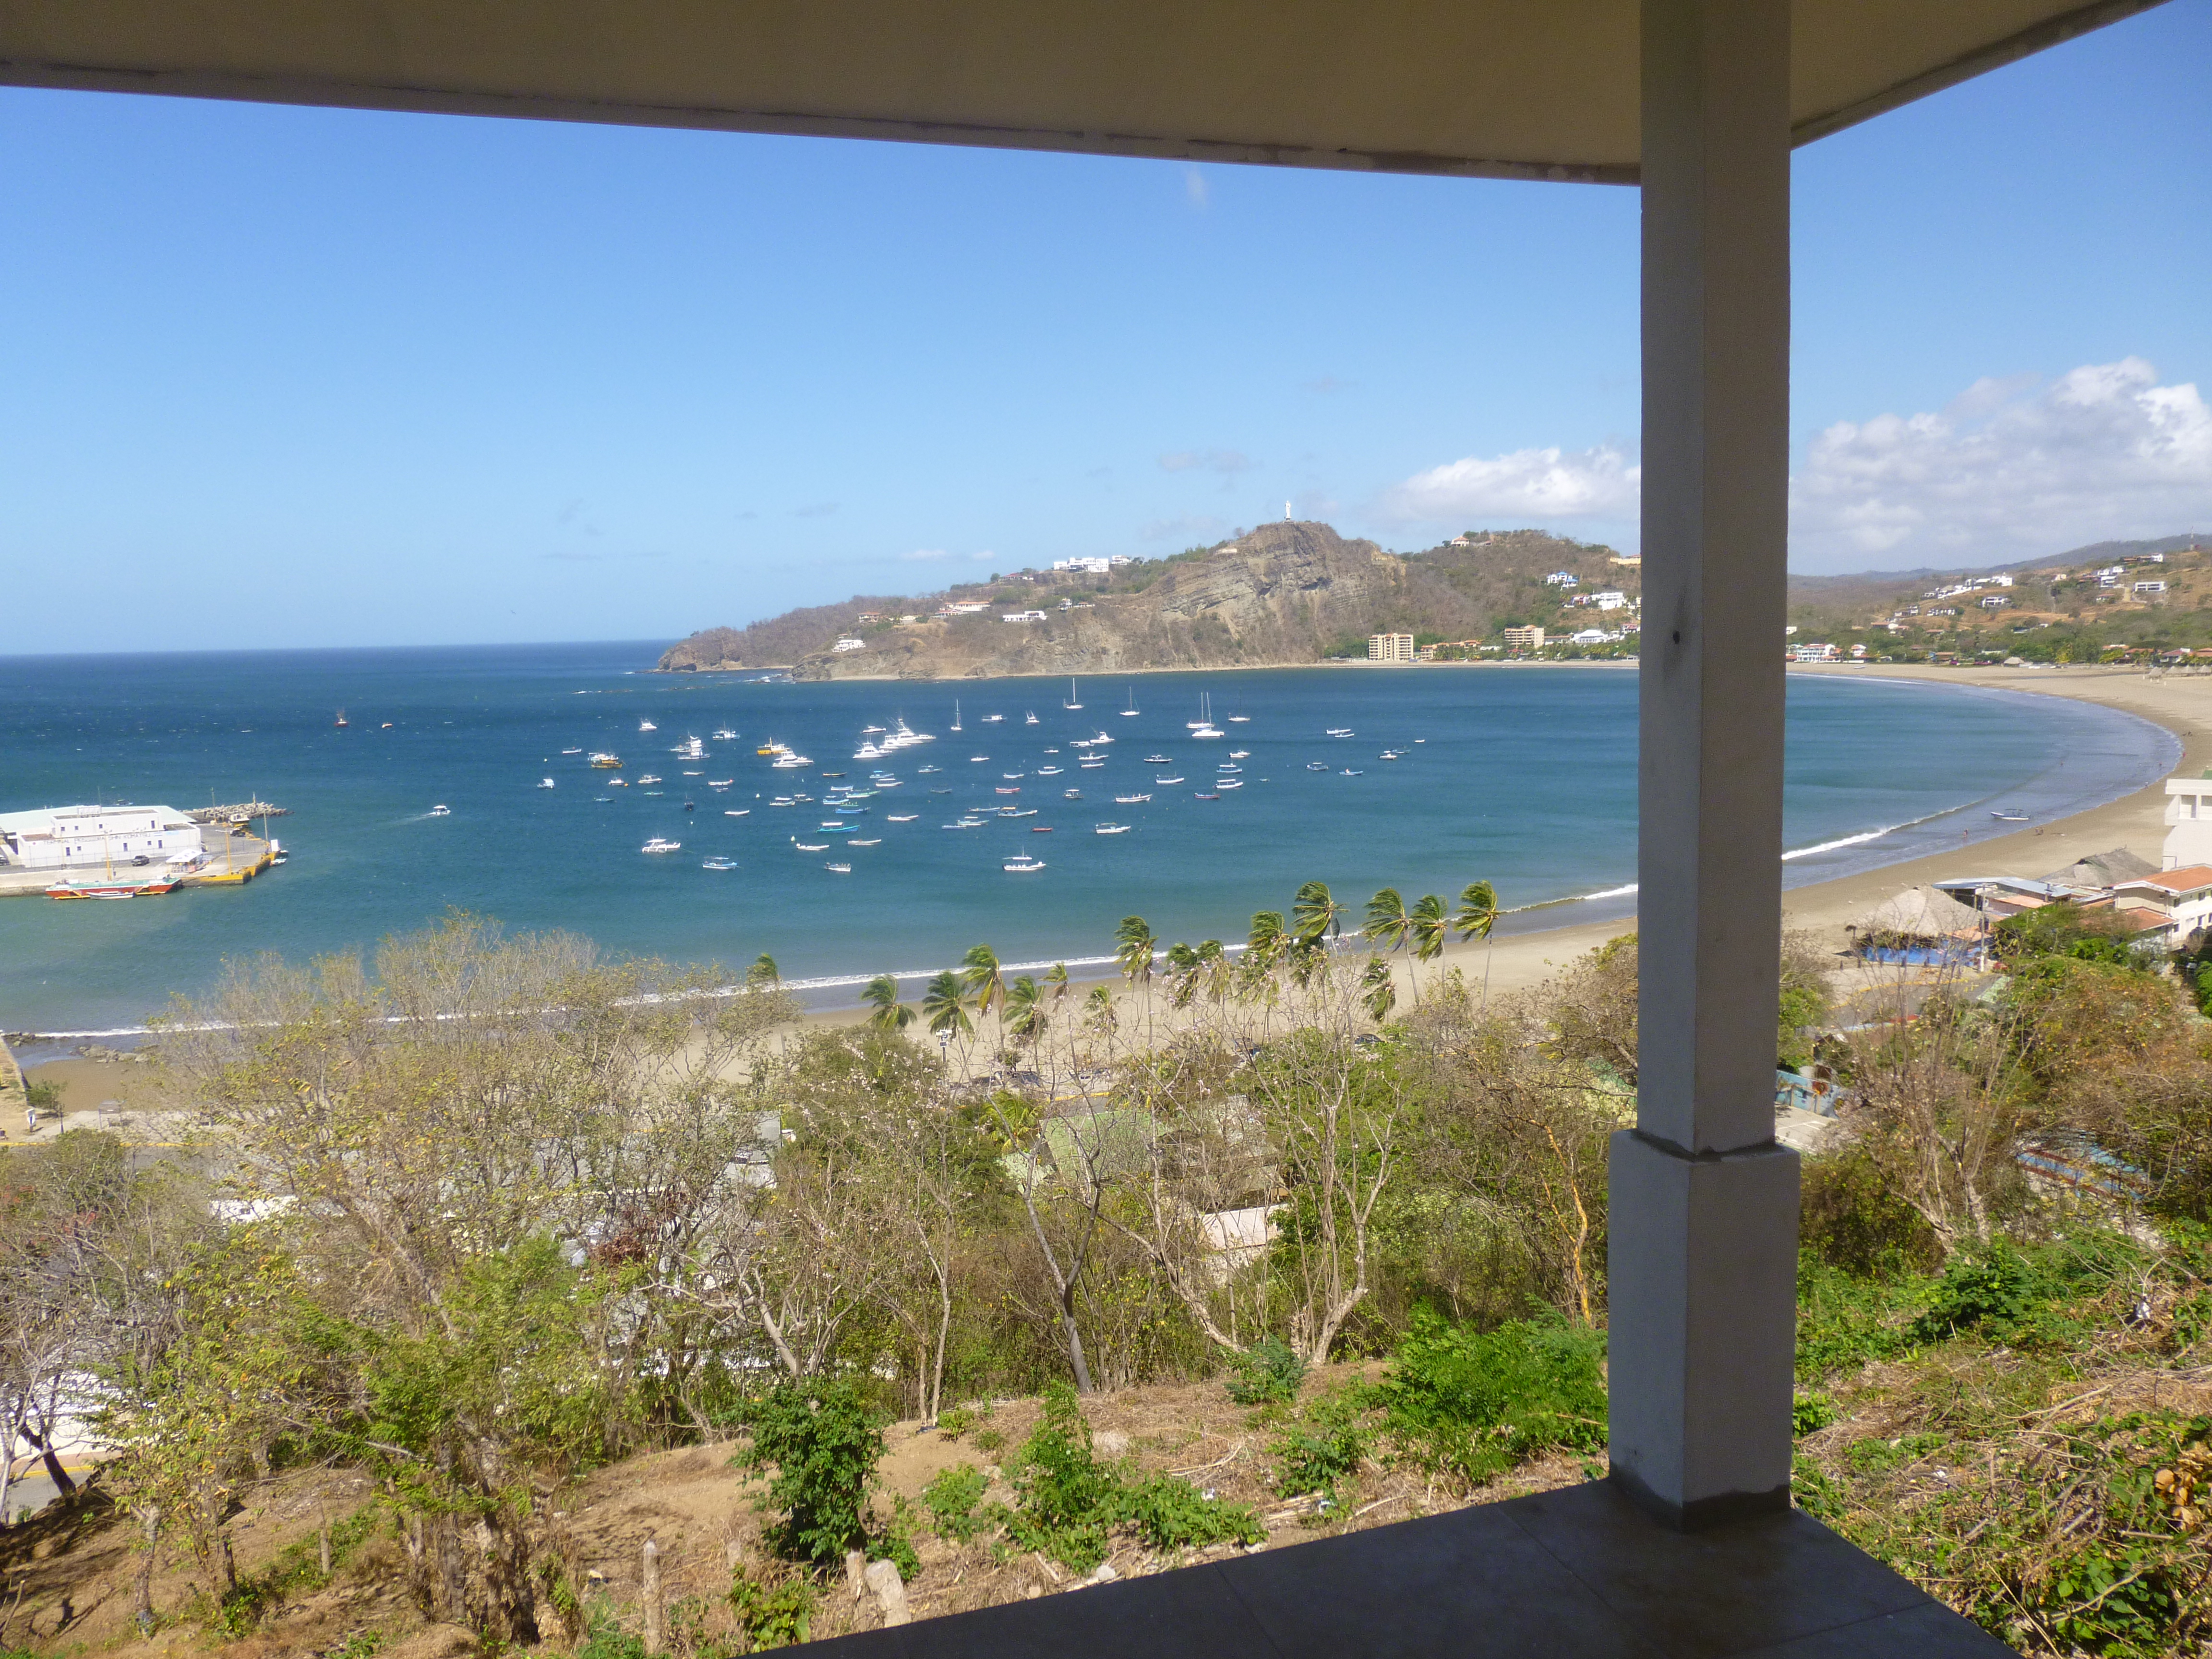 The AMAZING view! & 5 Tips for Building a House in Nicaragua | Hostels and Hot Rollers